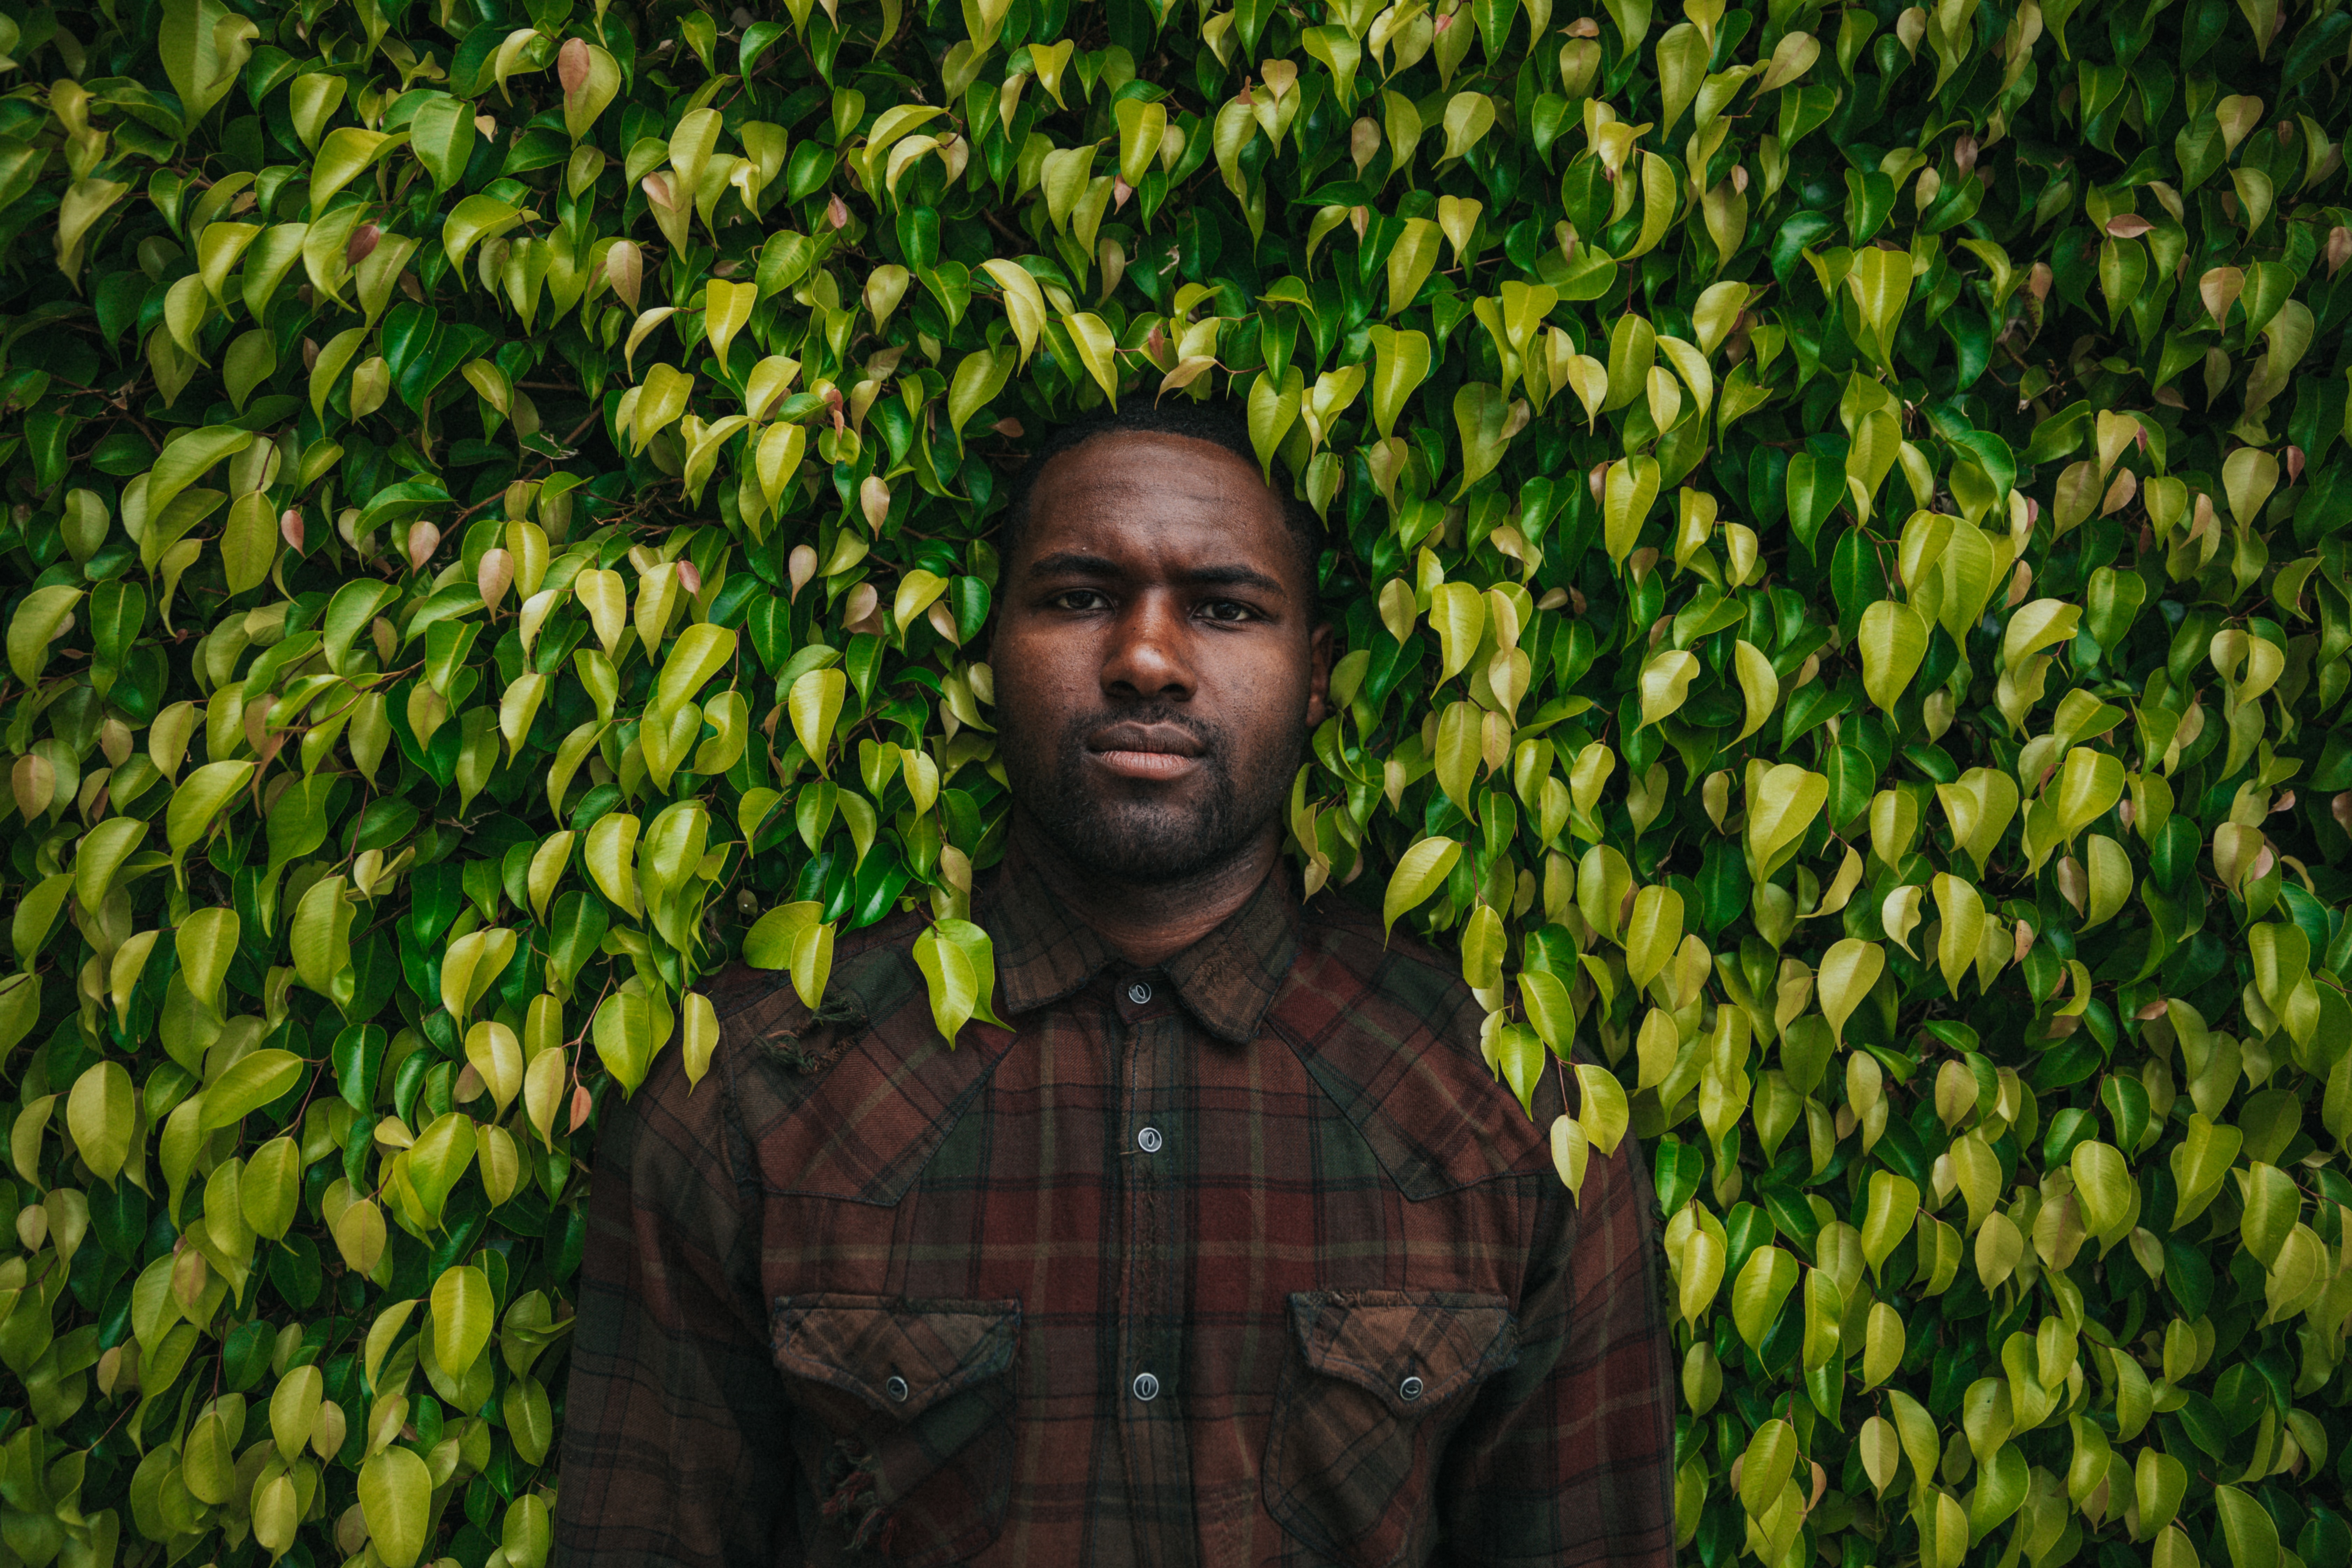 A man in a plaid shirt stands pressed against a green hedge